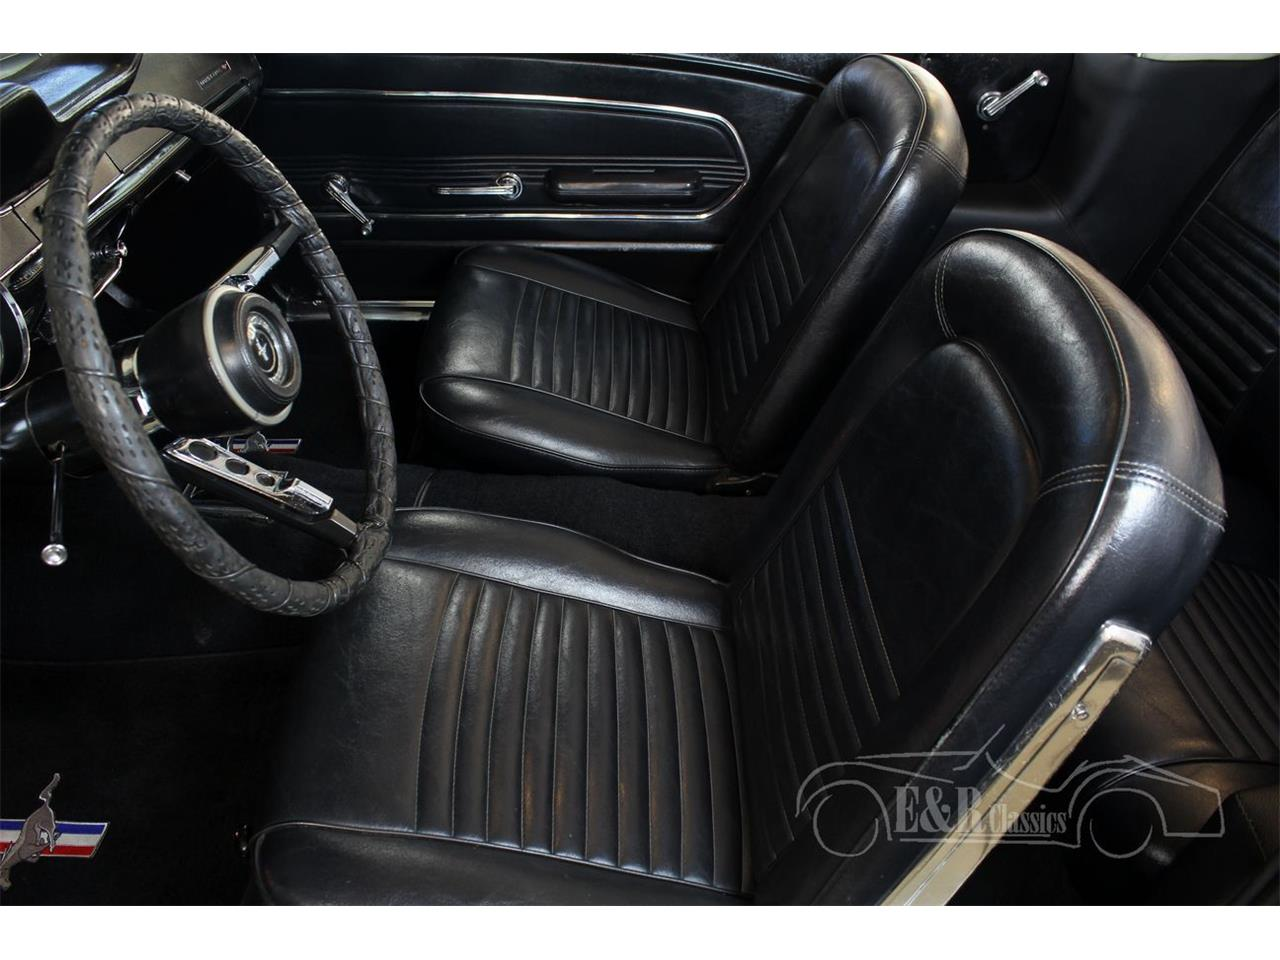 Large Picture of Classic '67 Ford Mustang Offered by E & R Classics - Q2ZB